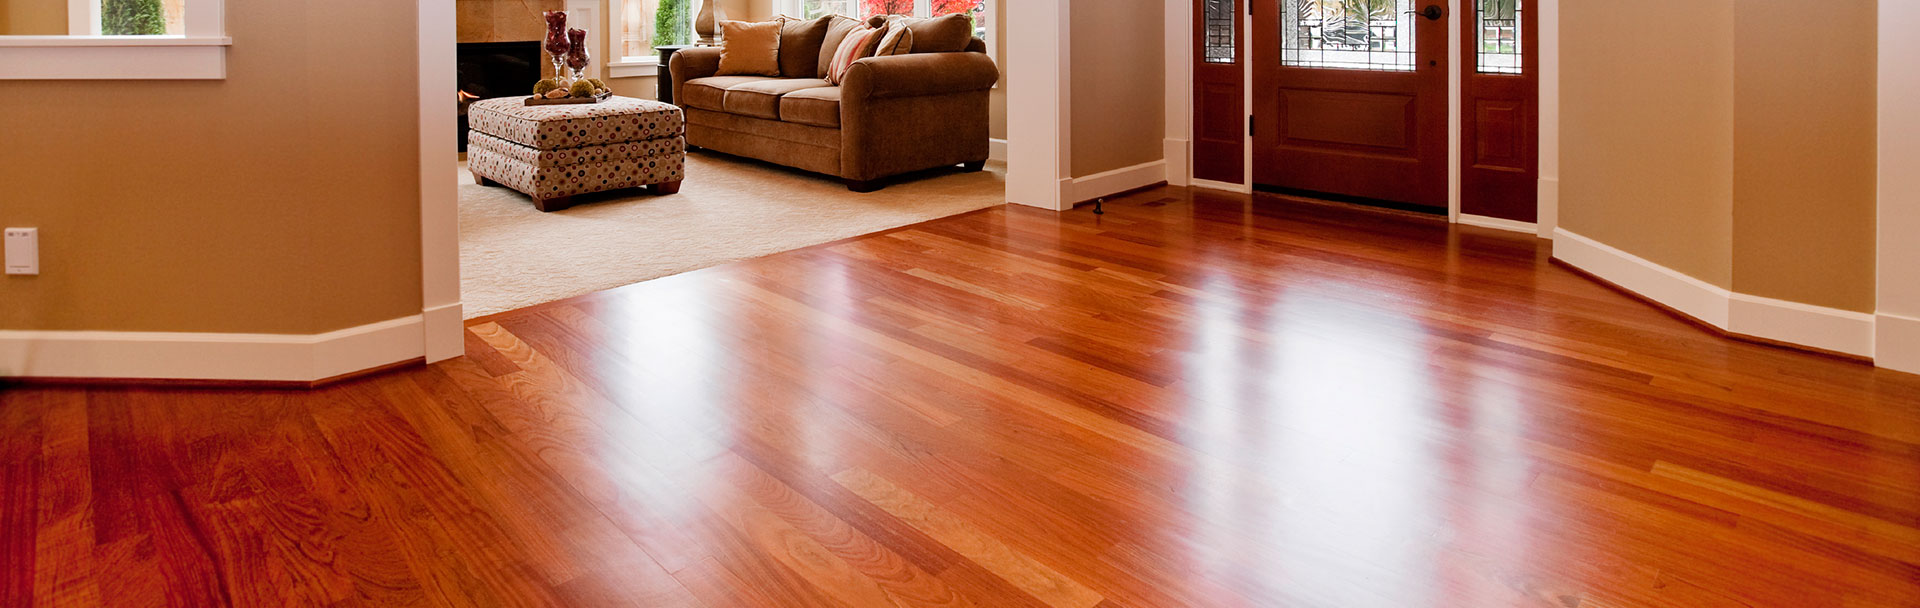 Hardwood floor installation flooring repairs sunnyvale for Resurfacing wood floors